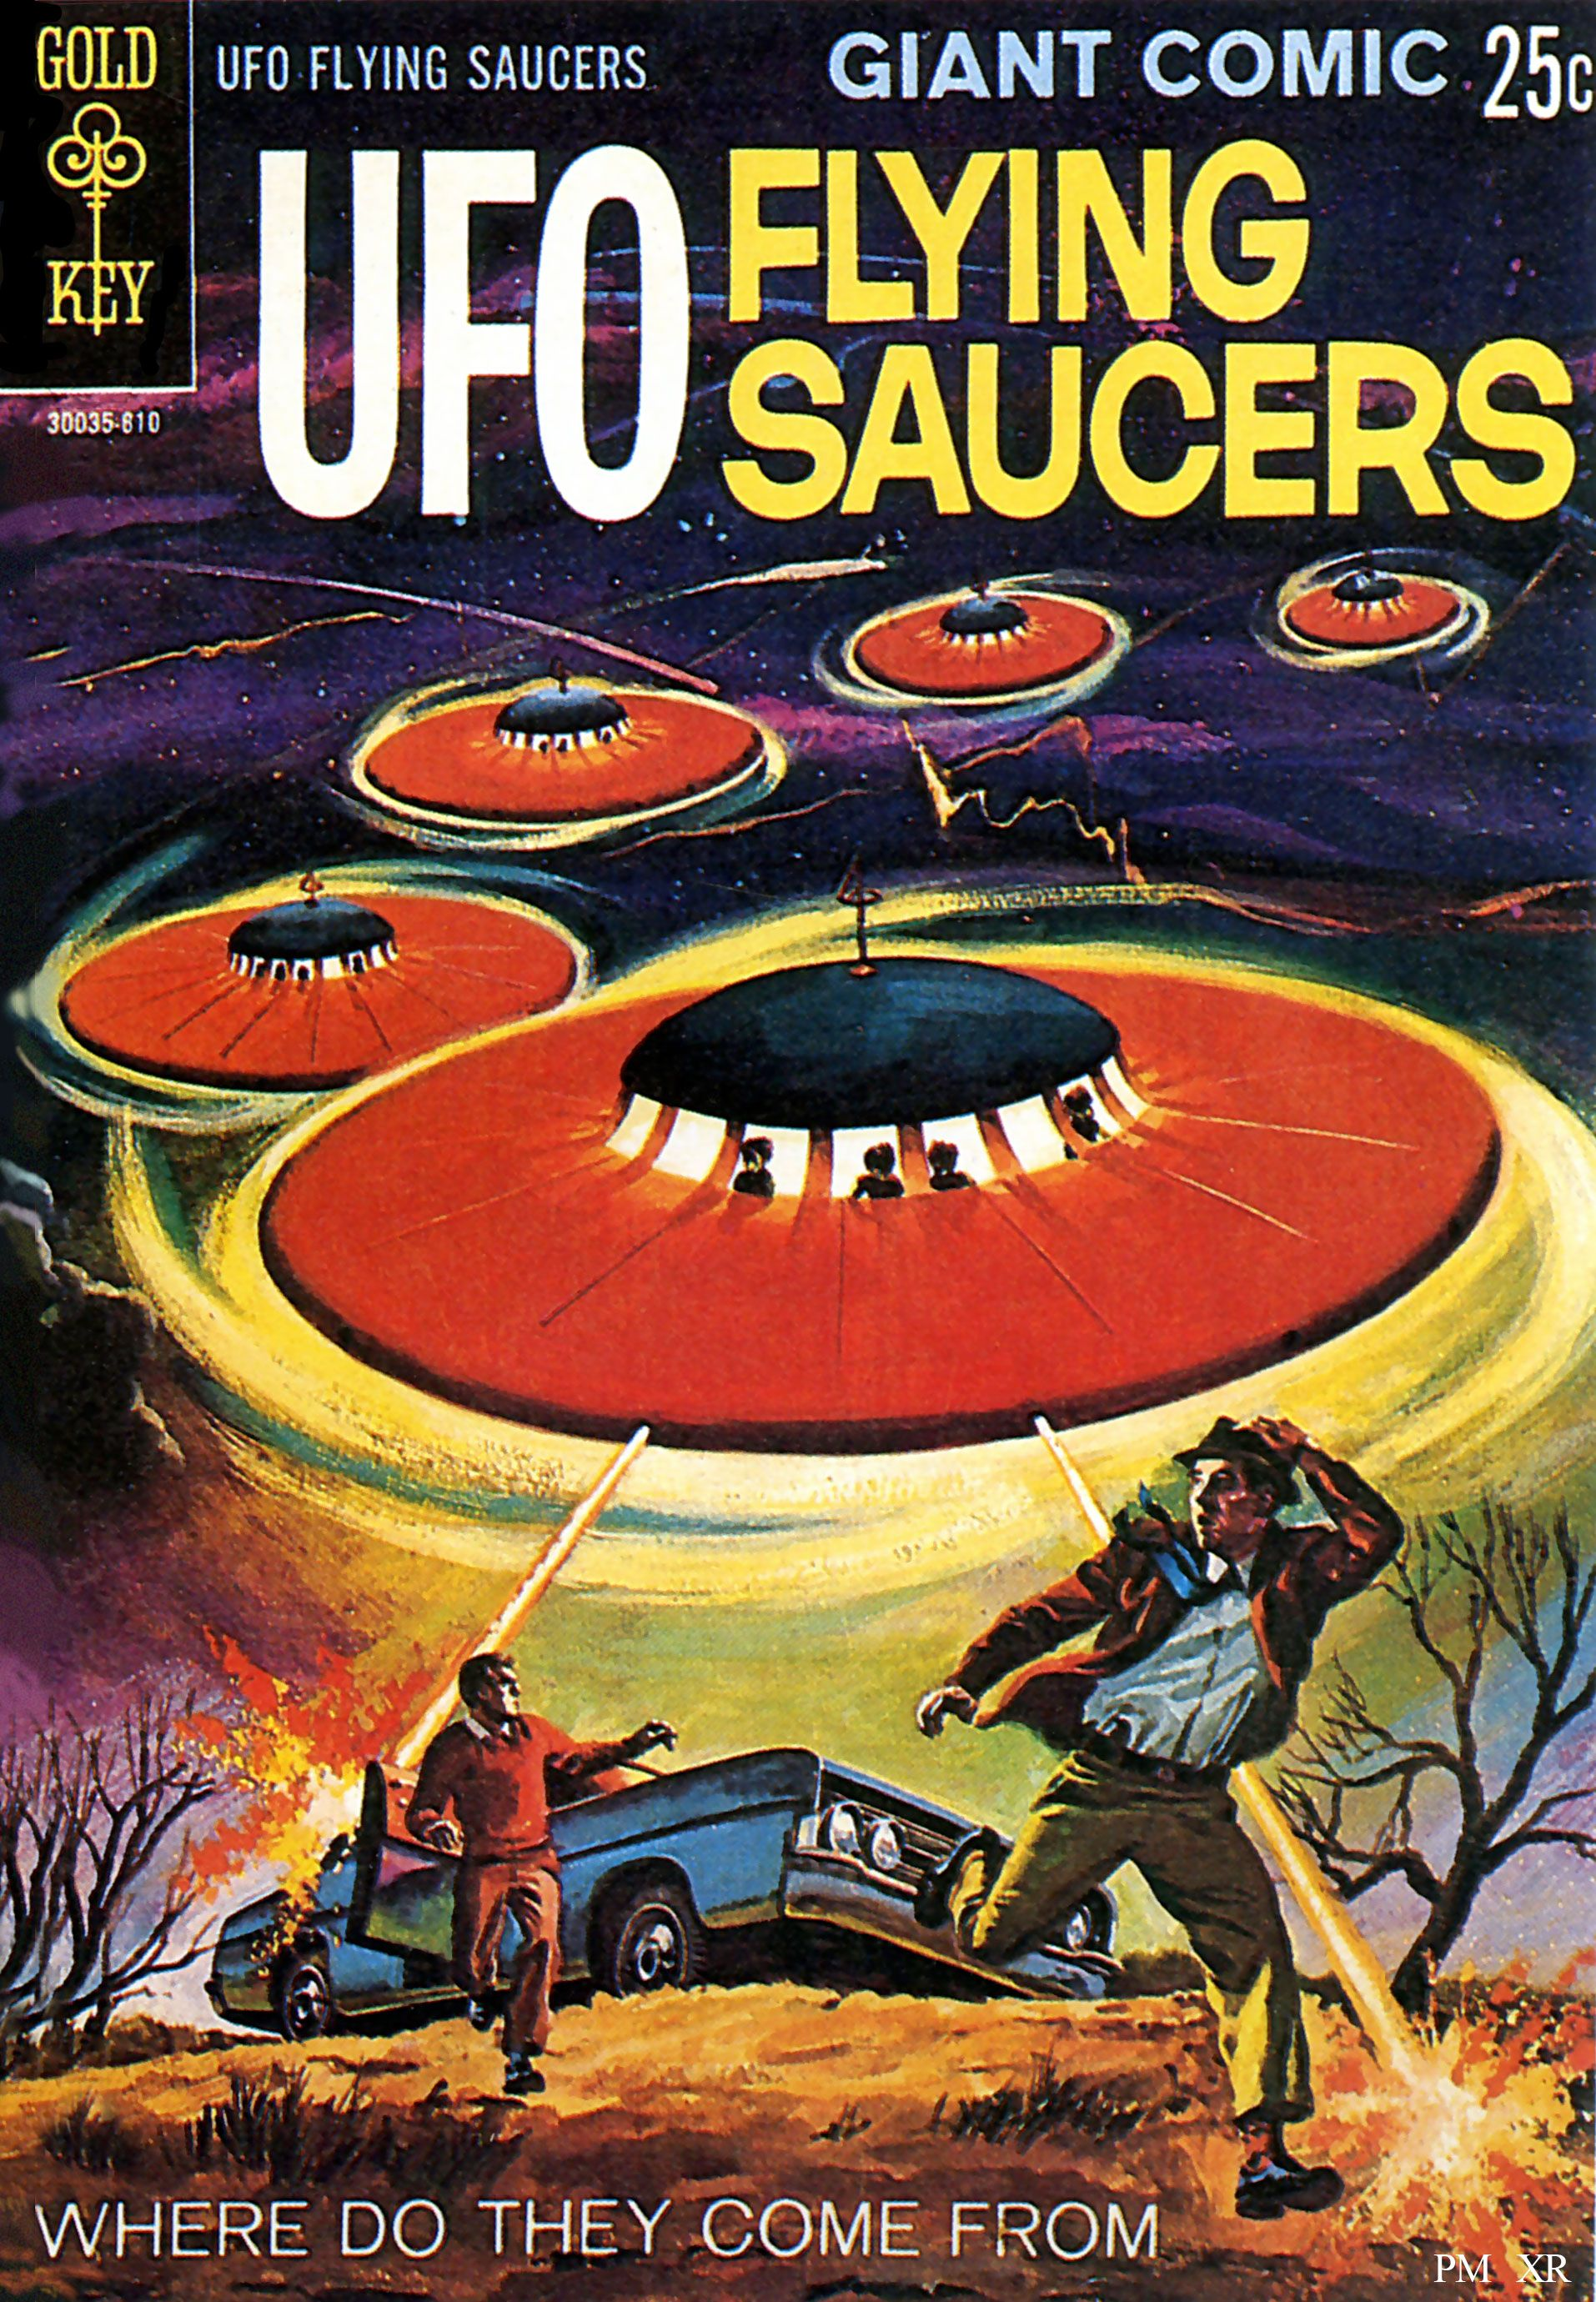 UFO Flying Saucer Comic | Vintage Science, Space ...